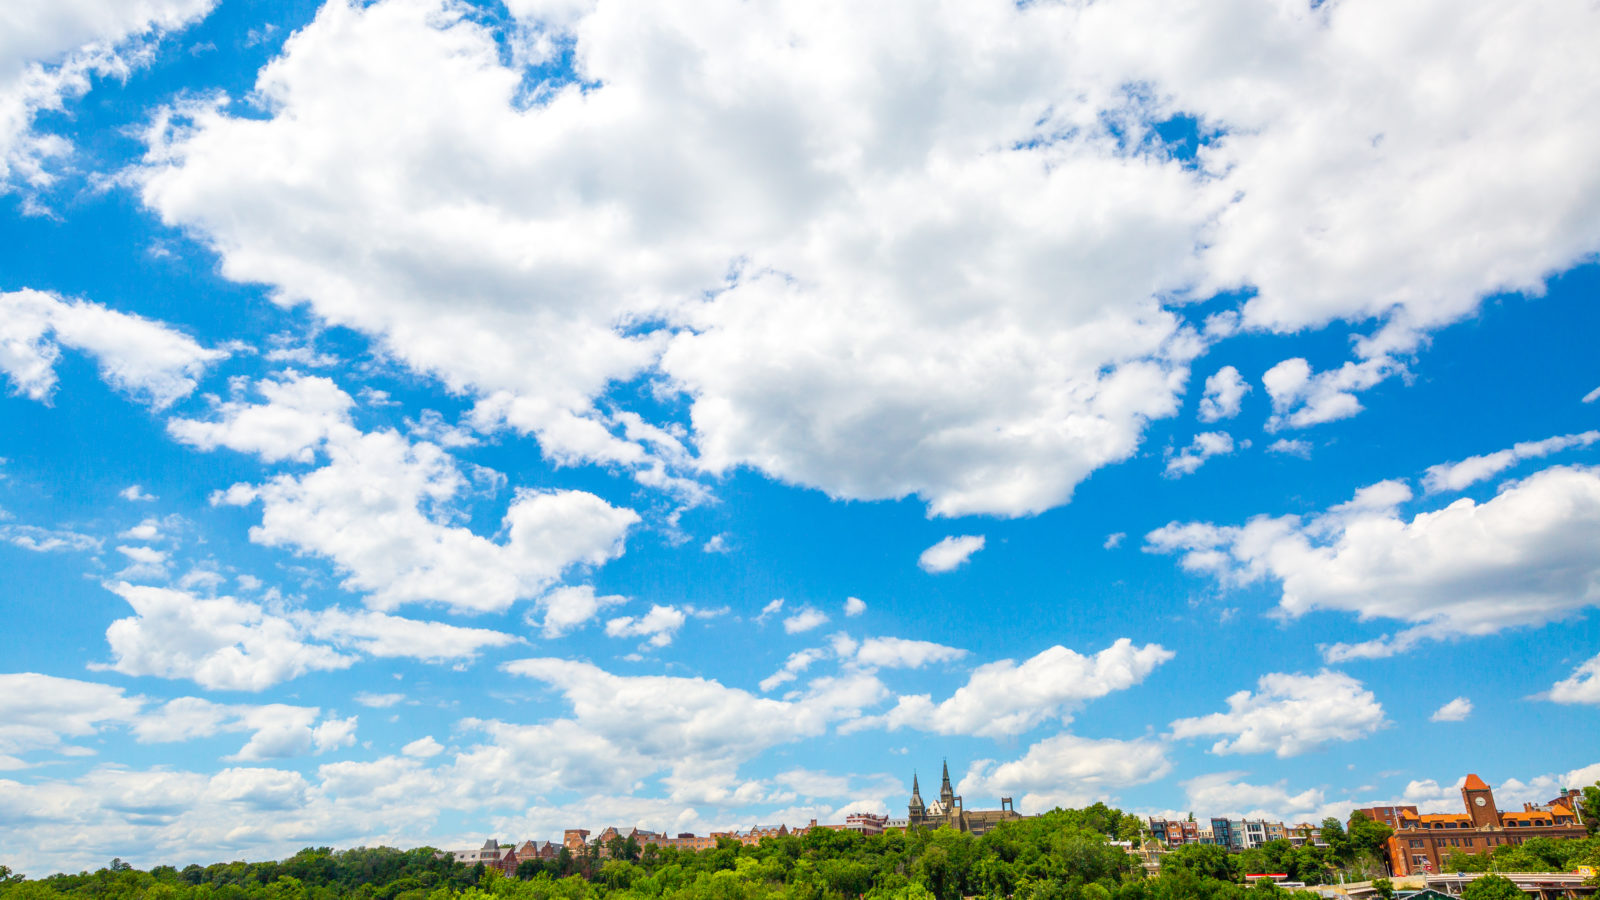 The Georgetown University campus outlines the bottom half of the photo, and is framed by a large, blue sky.